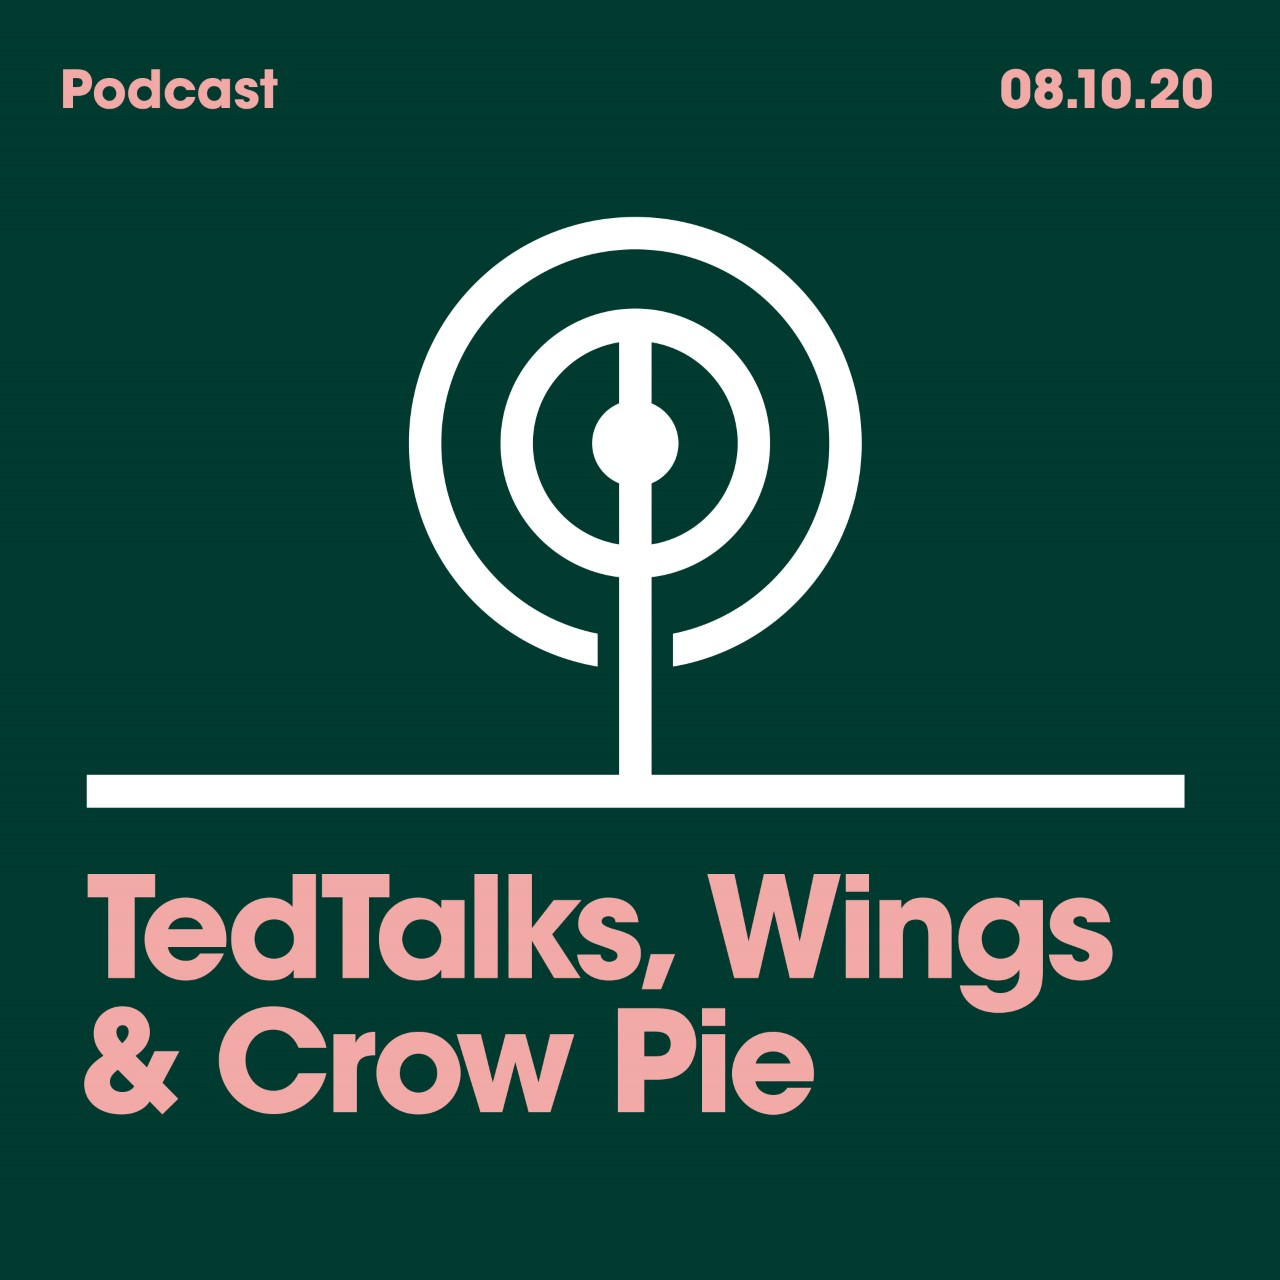 09.10.20. TedTalks, Wings and Crow Pie